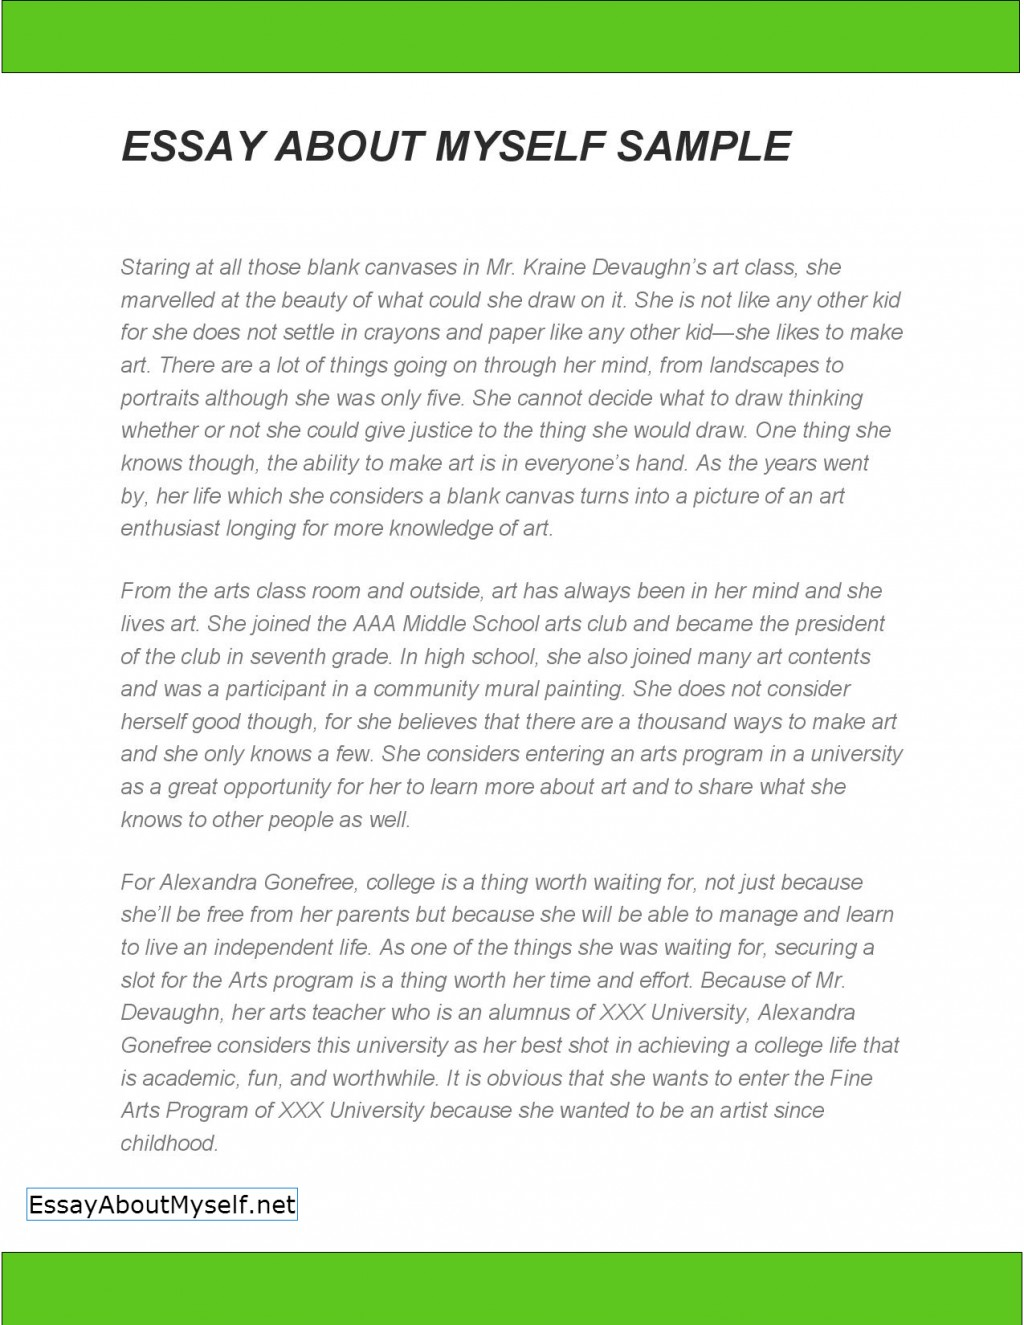 002 Essay About Myself Sample Example Introduction Rare Self For Job Application Samples Large